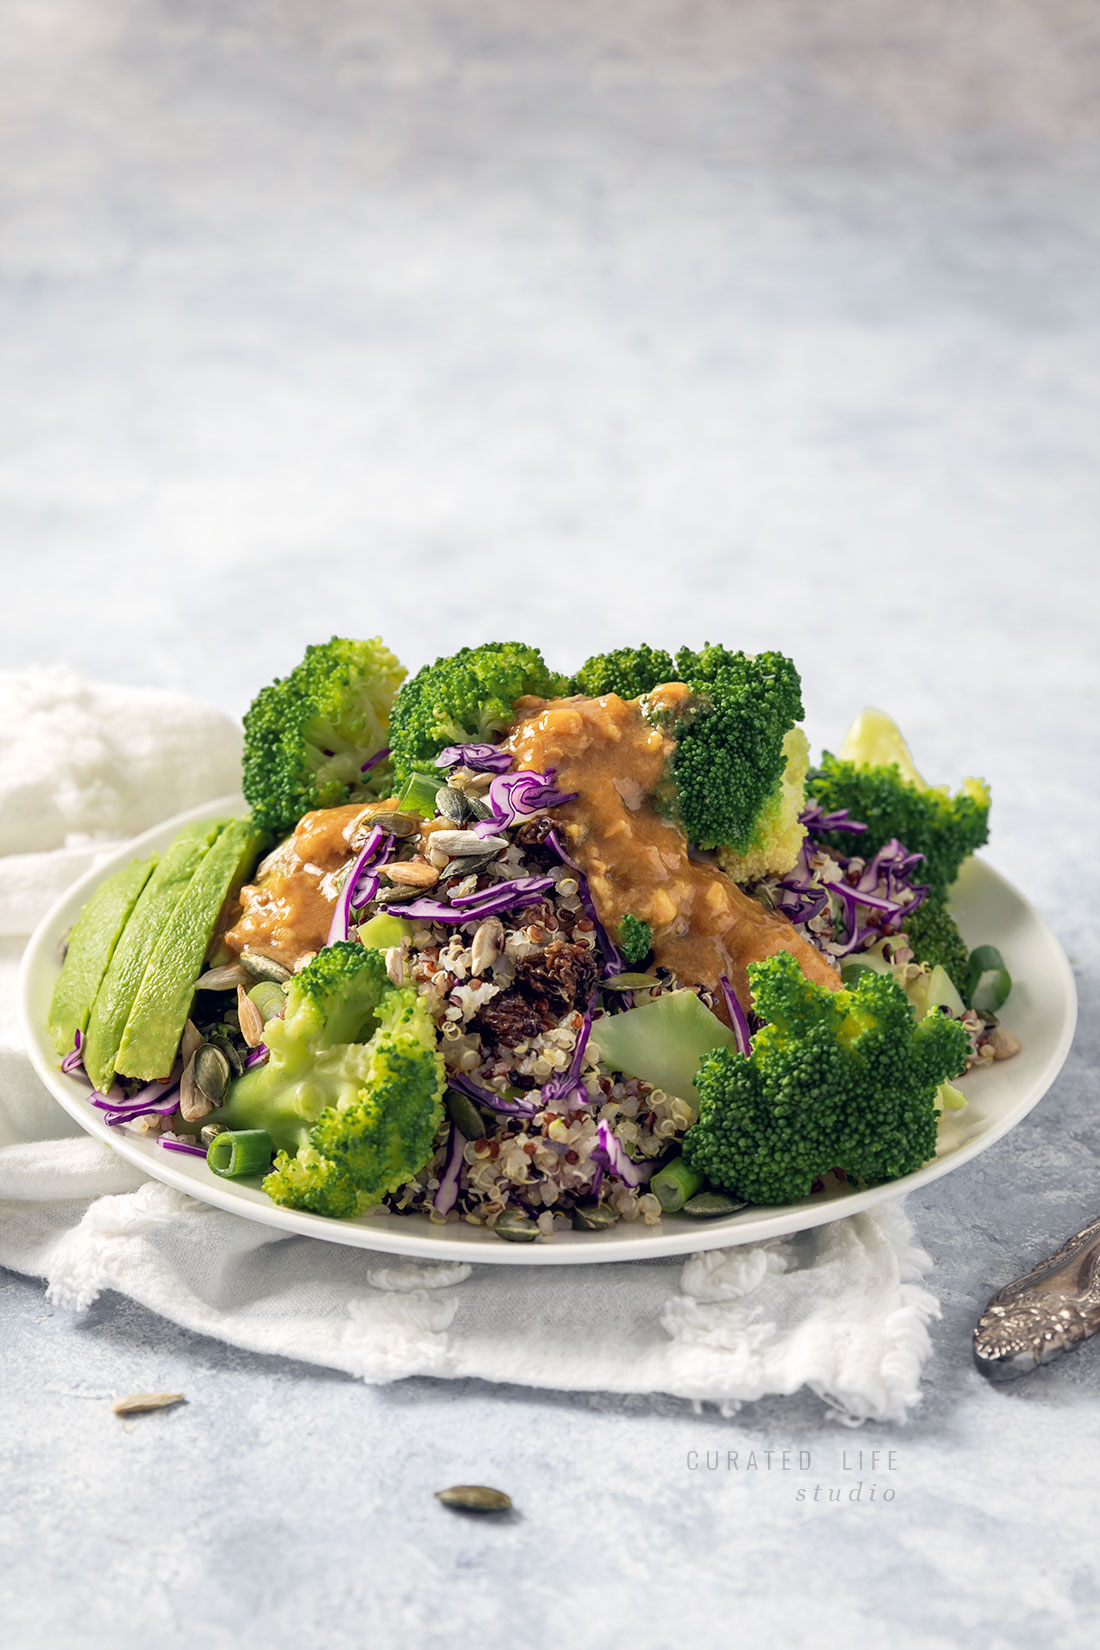 The pale blue background, white linen napkins and light-filled table are reminiscent of summer. In front of you sits a plate of a fresh Broccoli Salad with a drizzle of Peanut Dressing. Sunflower seeds scatter the table.